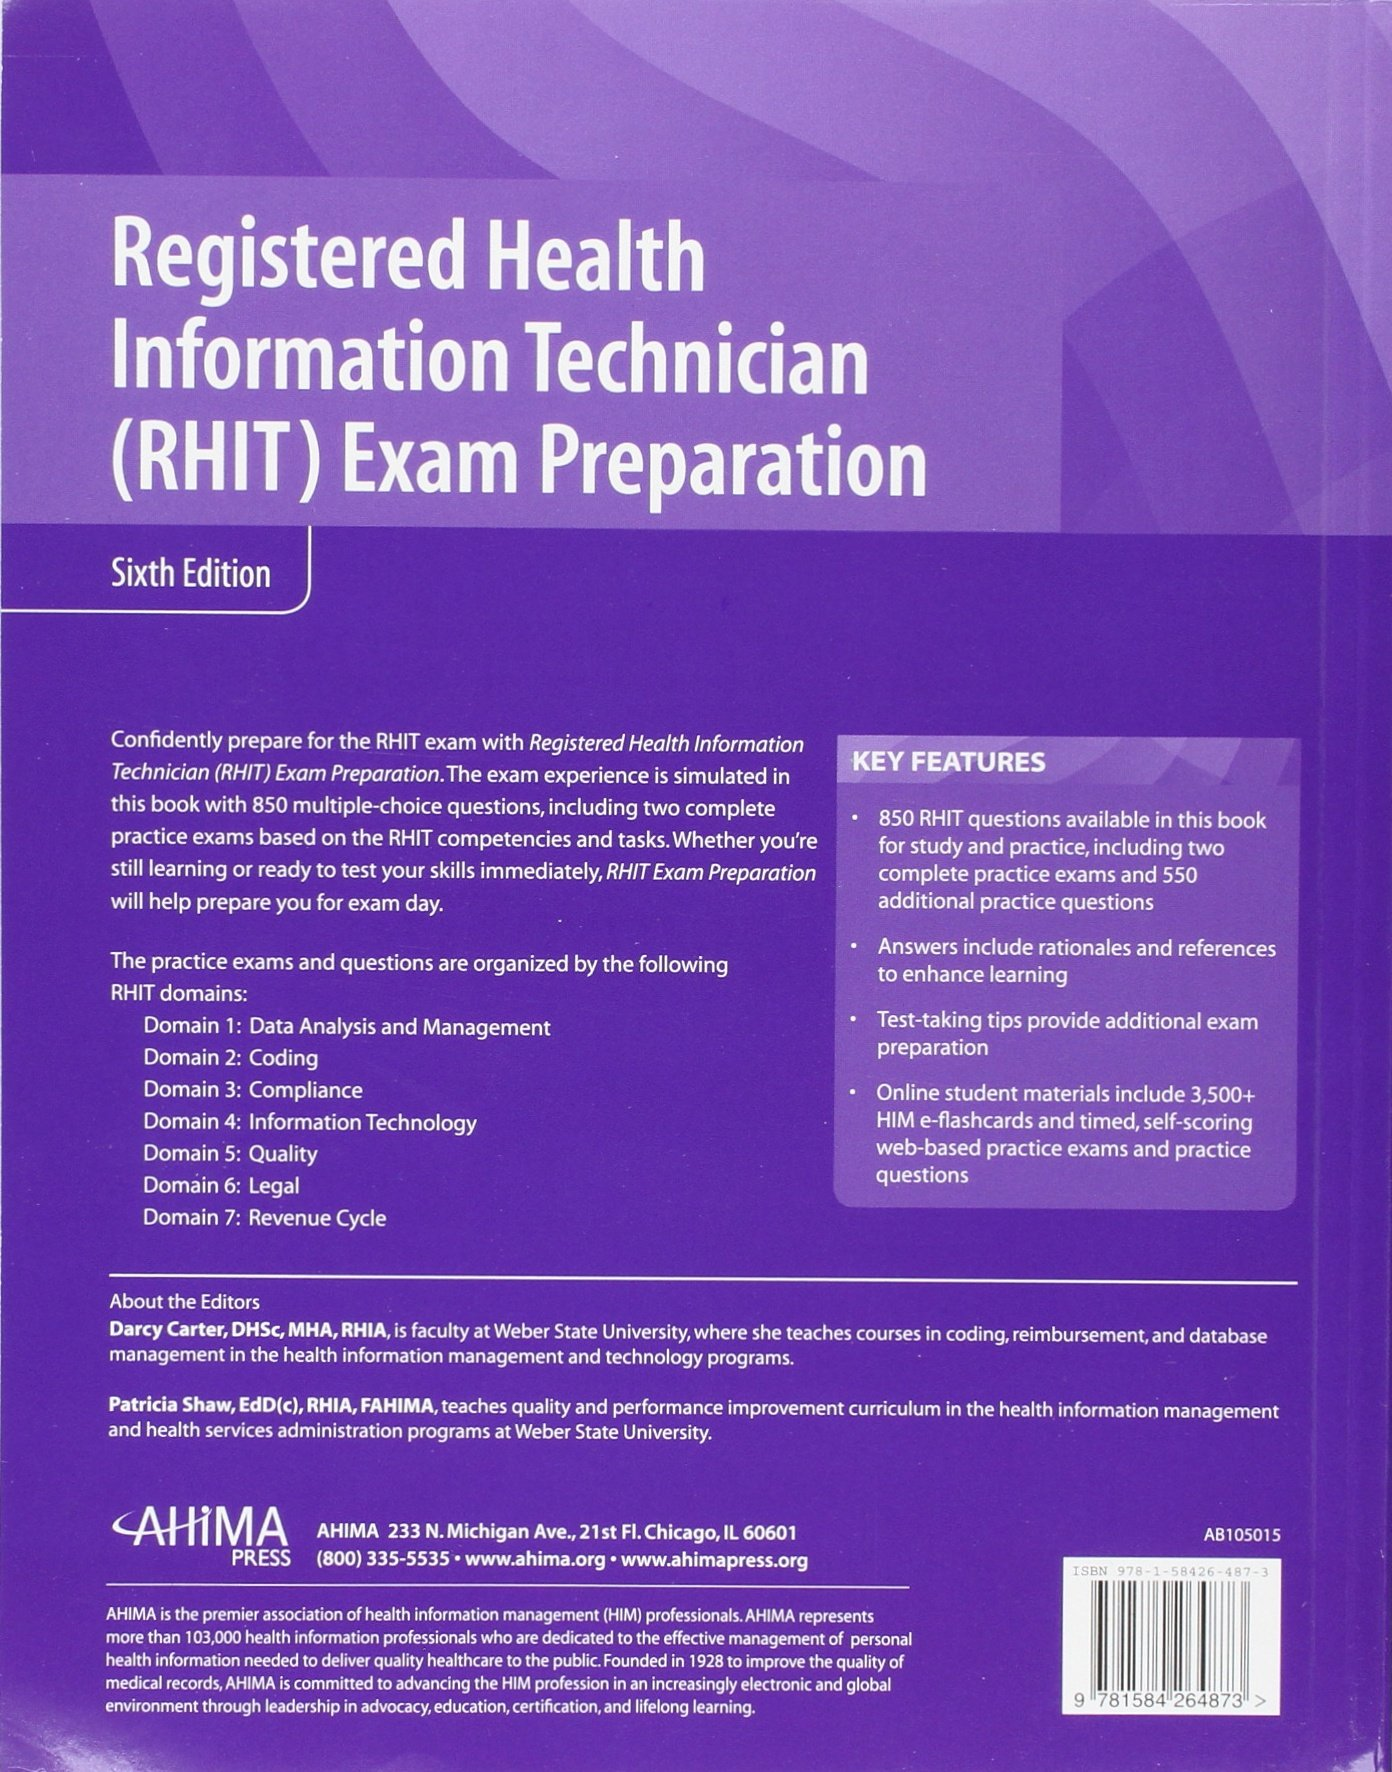 Buy Registered Health Information Technician Rhit Exam Preparation